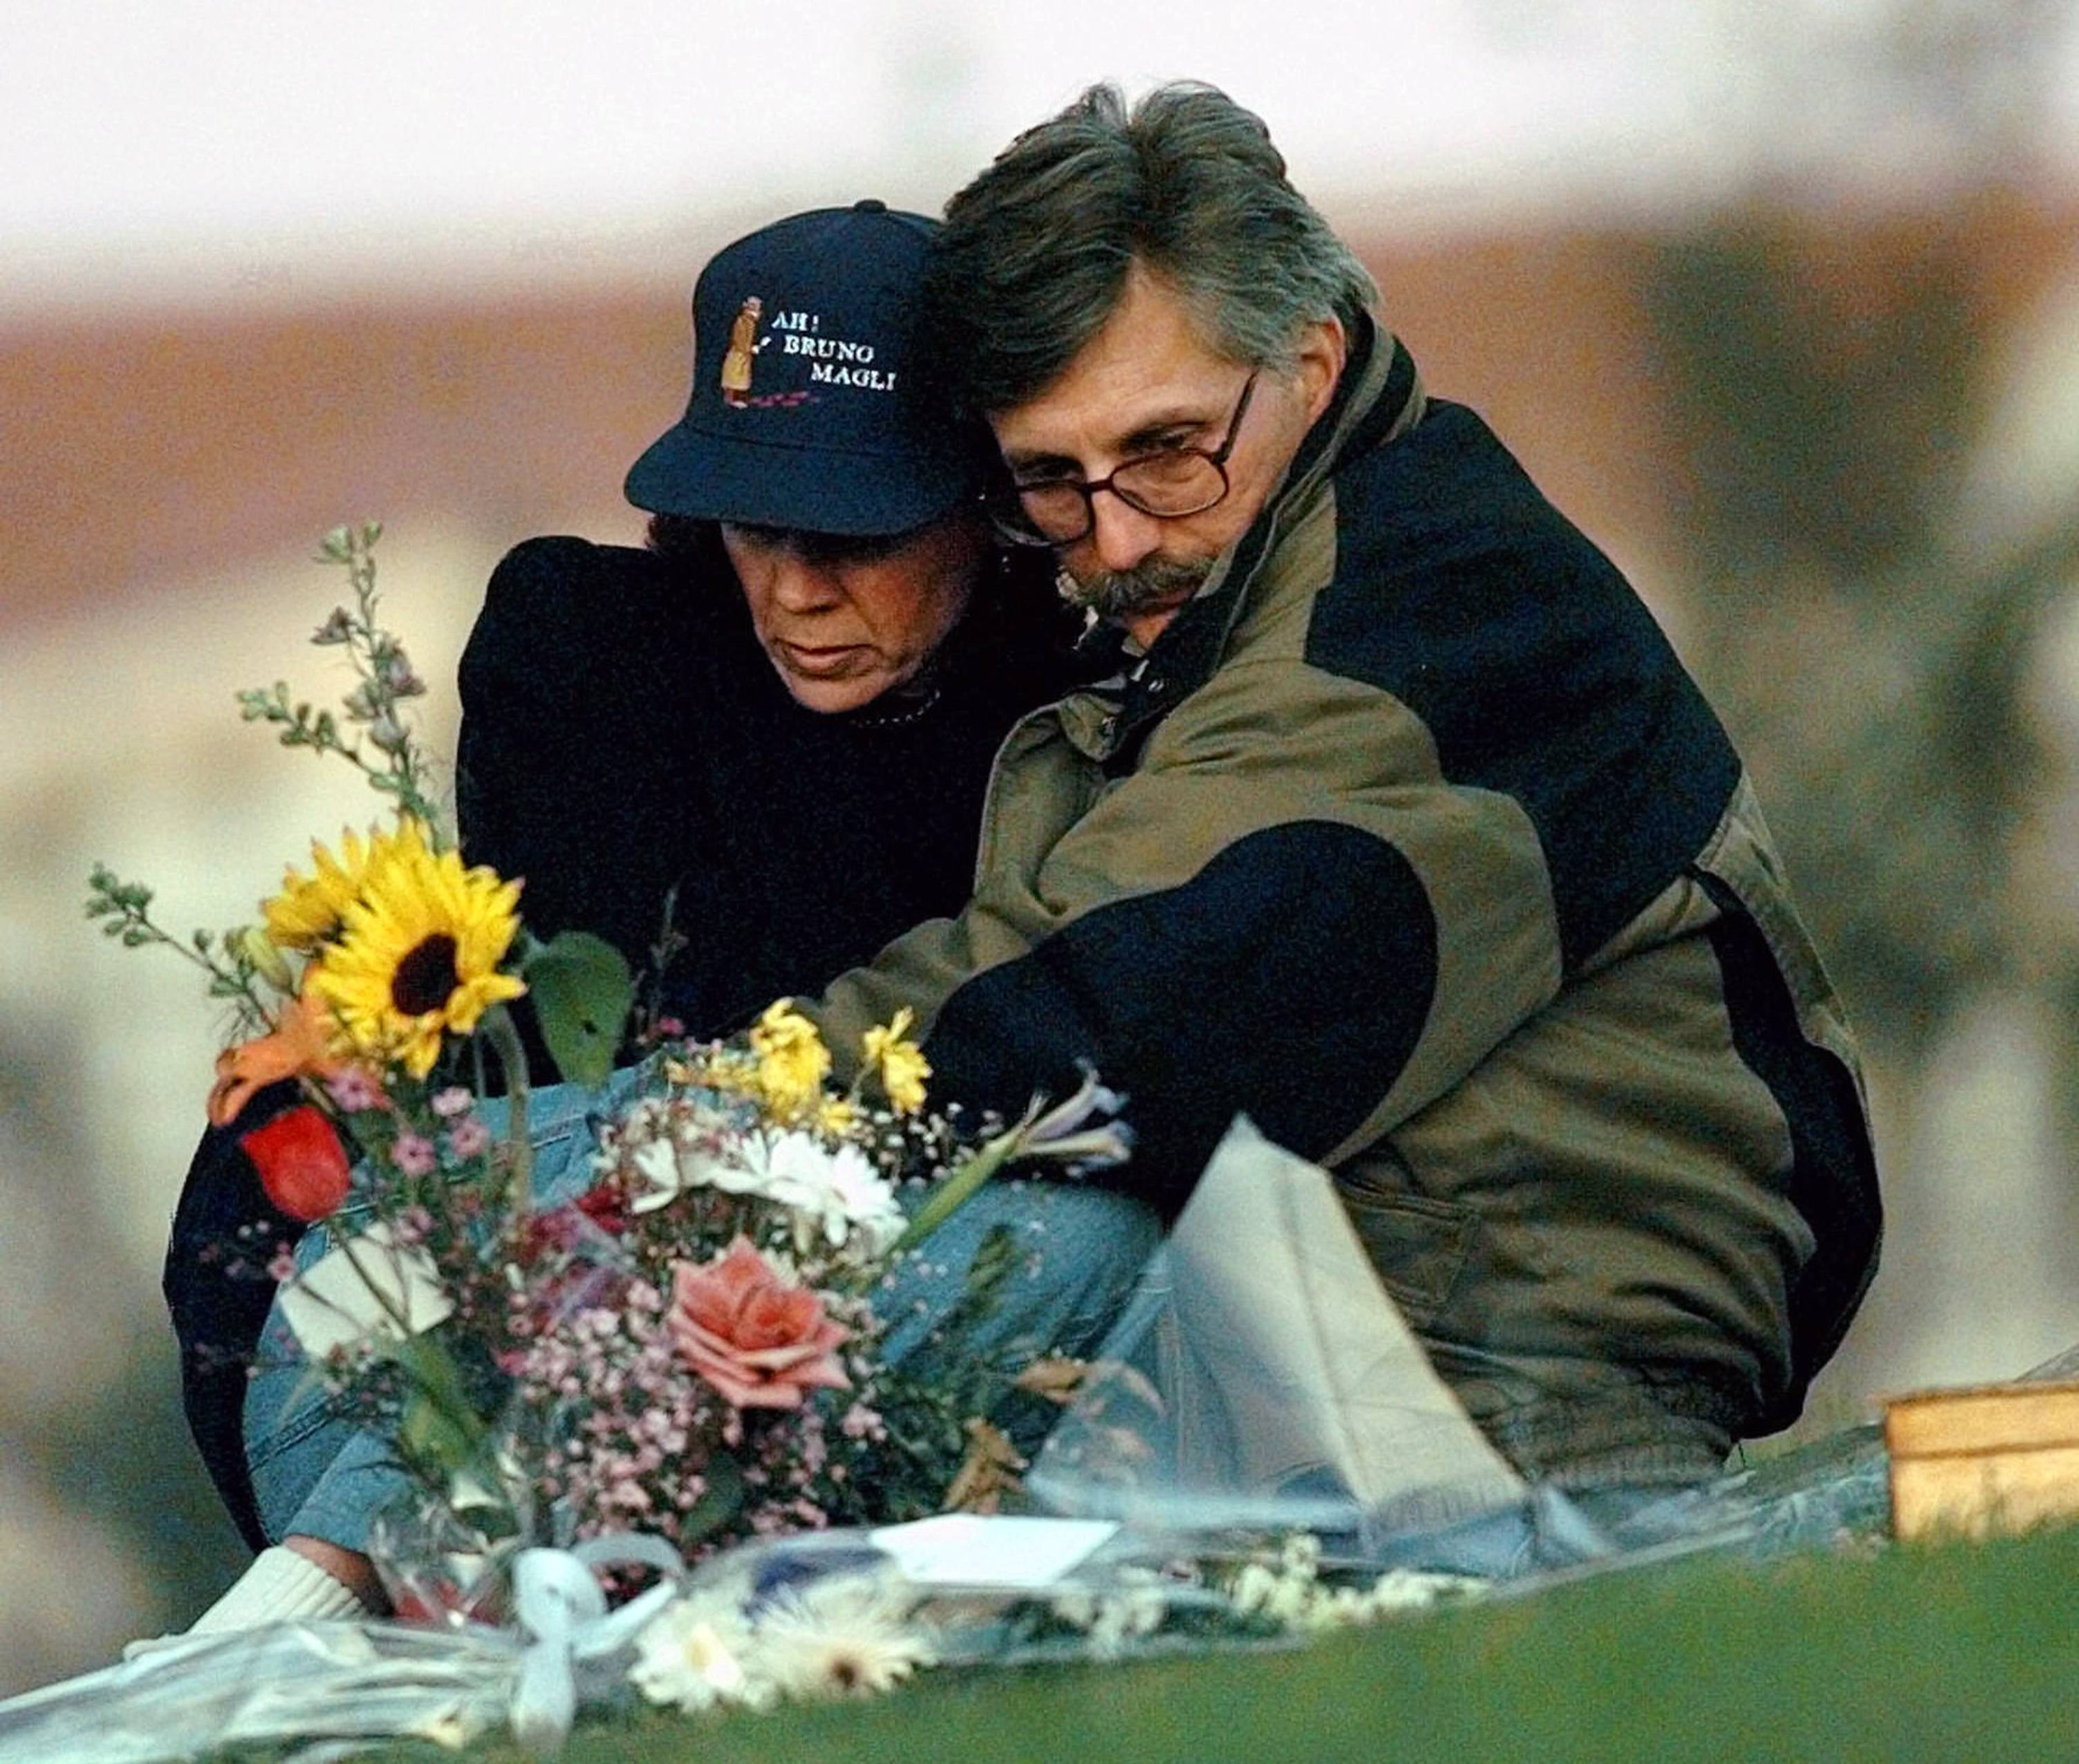 In this Feb. 5, 1997 file photo, Fred Goldman and his wife, Patti, sit quietly at the grave of their son Ronald Goldman in Valley Oaks Memorial Park in Westlake Village, Calif. Fred Goldman hasn't rested since a jury acquitted O.J. Simpson in the murder case 20 years ago. Simpson pulled a hotel-room stickup in Las Vegas in 2007 to recover his sports memorabilia before Goldman could get it, an act that landed him in prison for as long as 33 years.